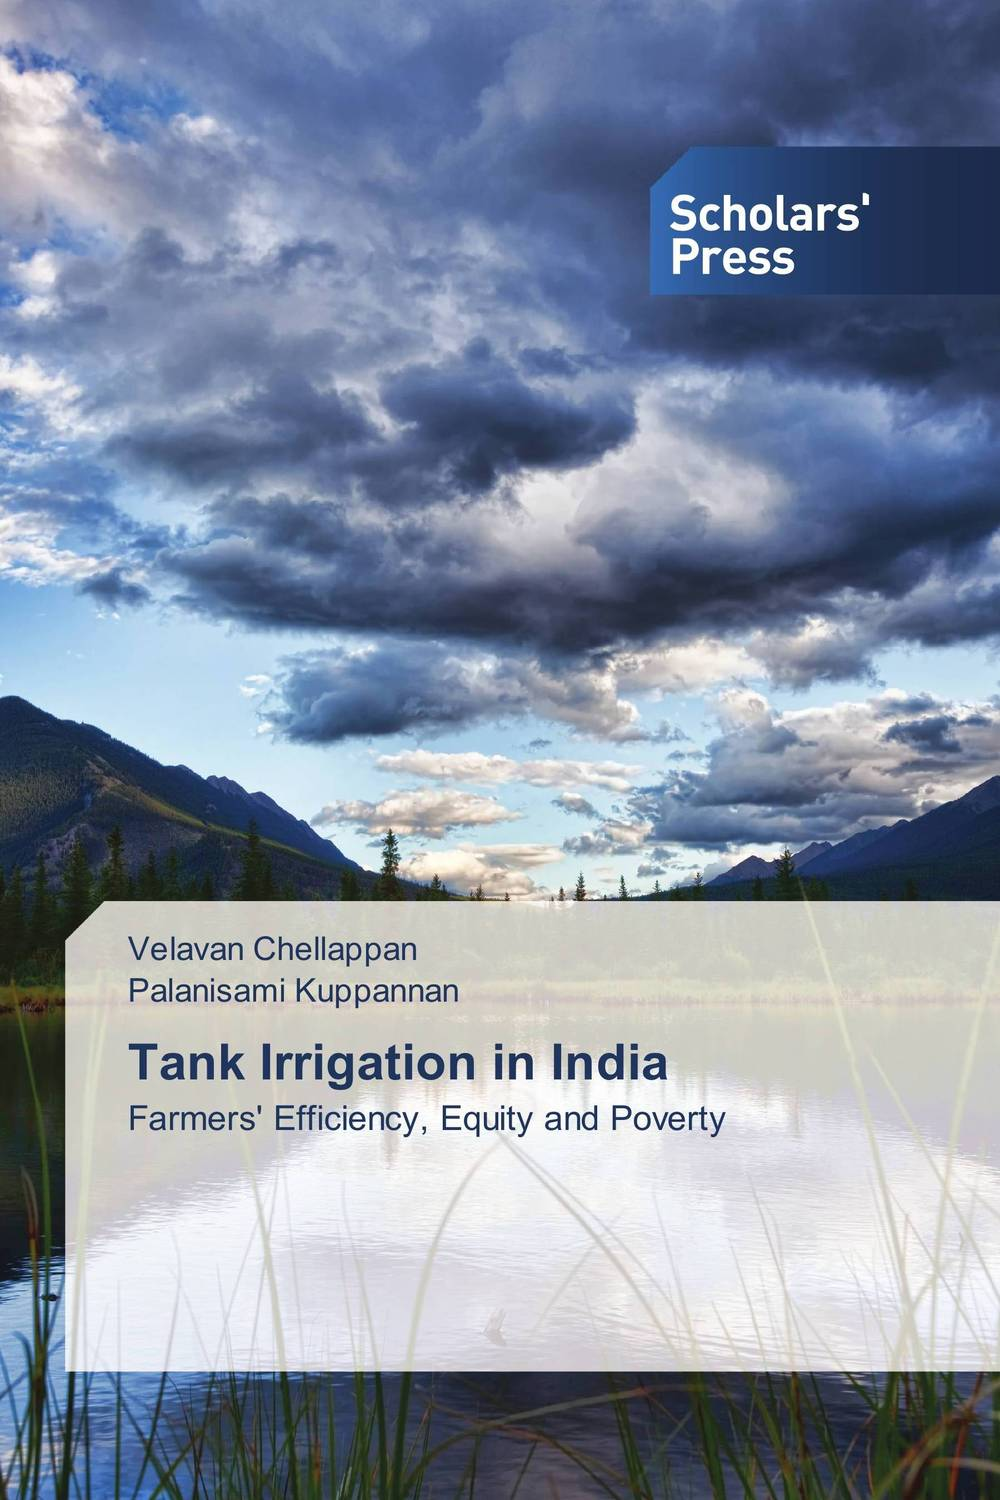 купить Tank Irrigation in India недорого